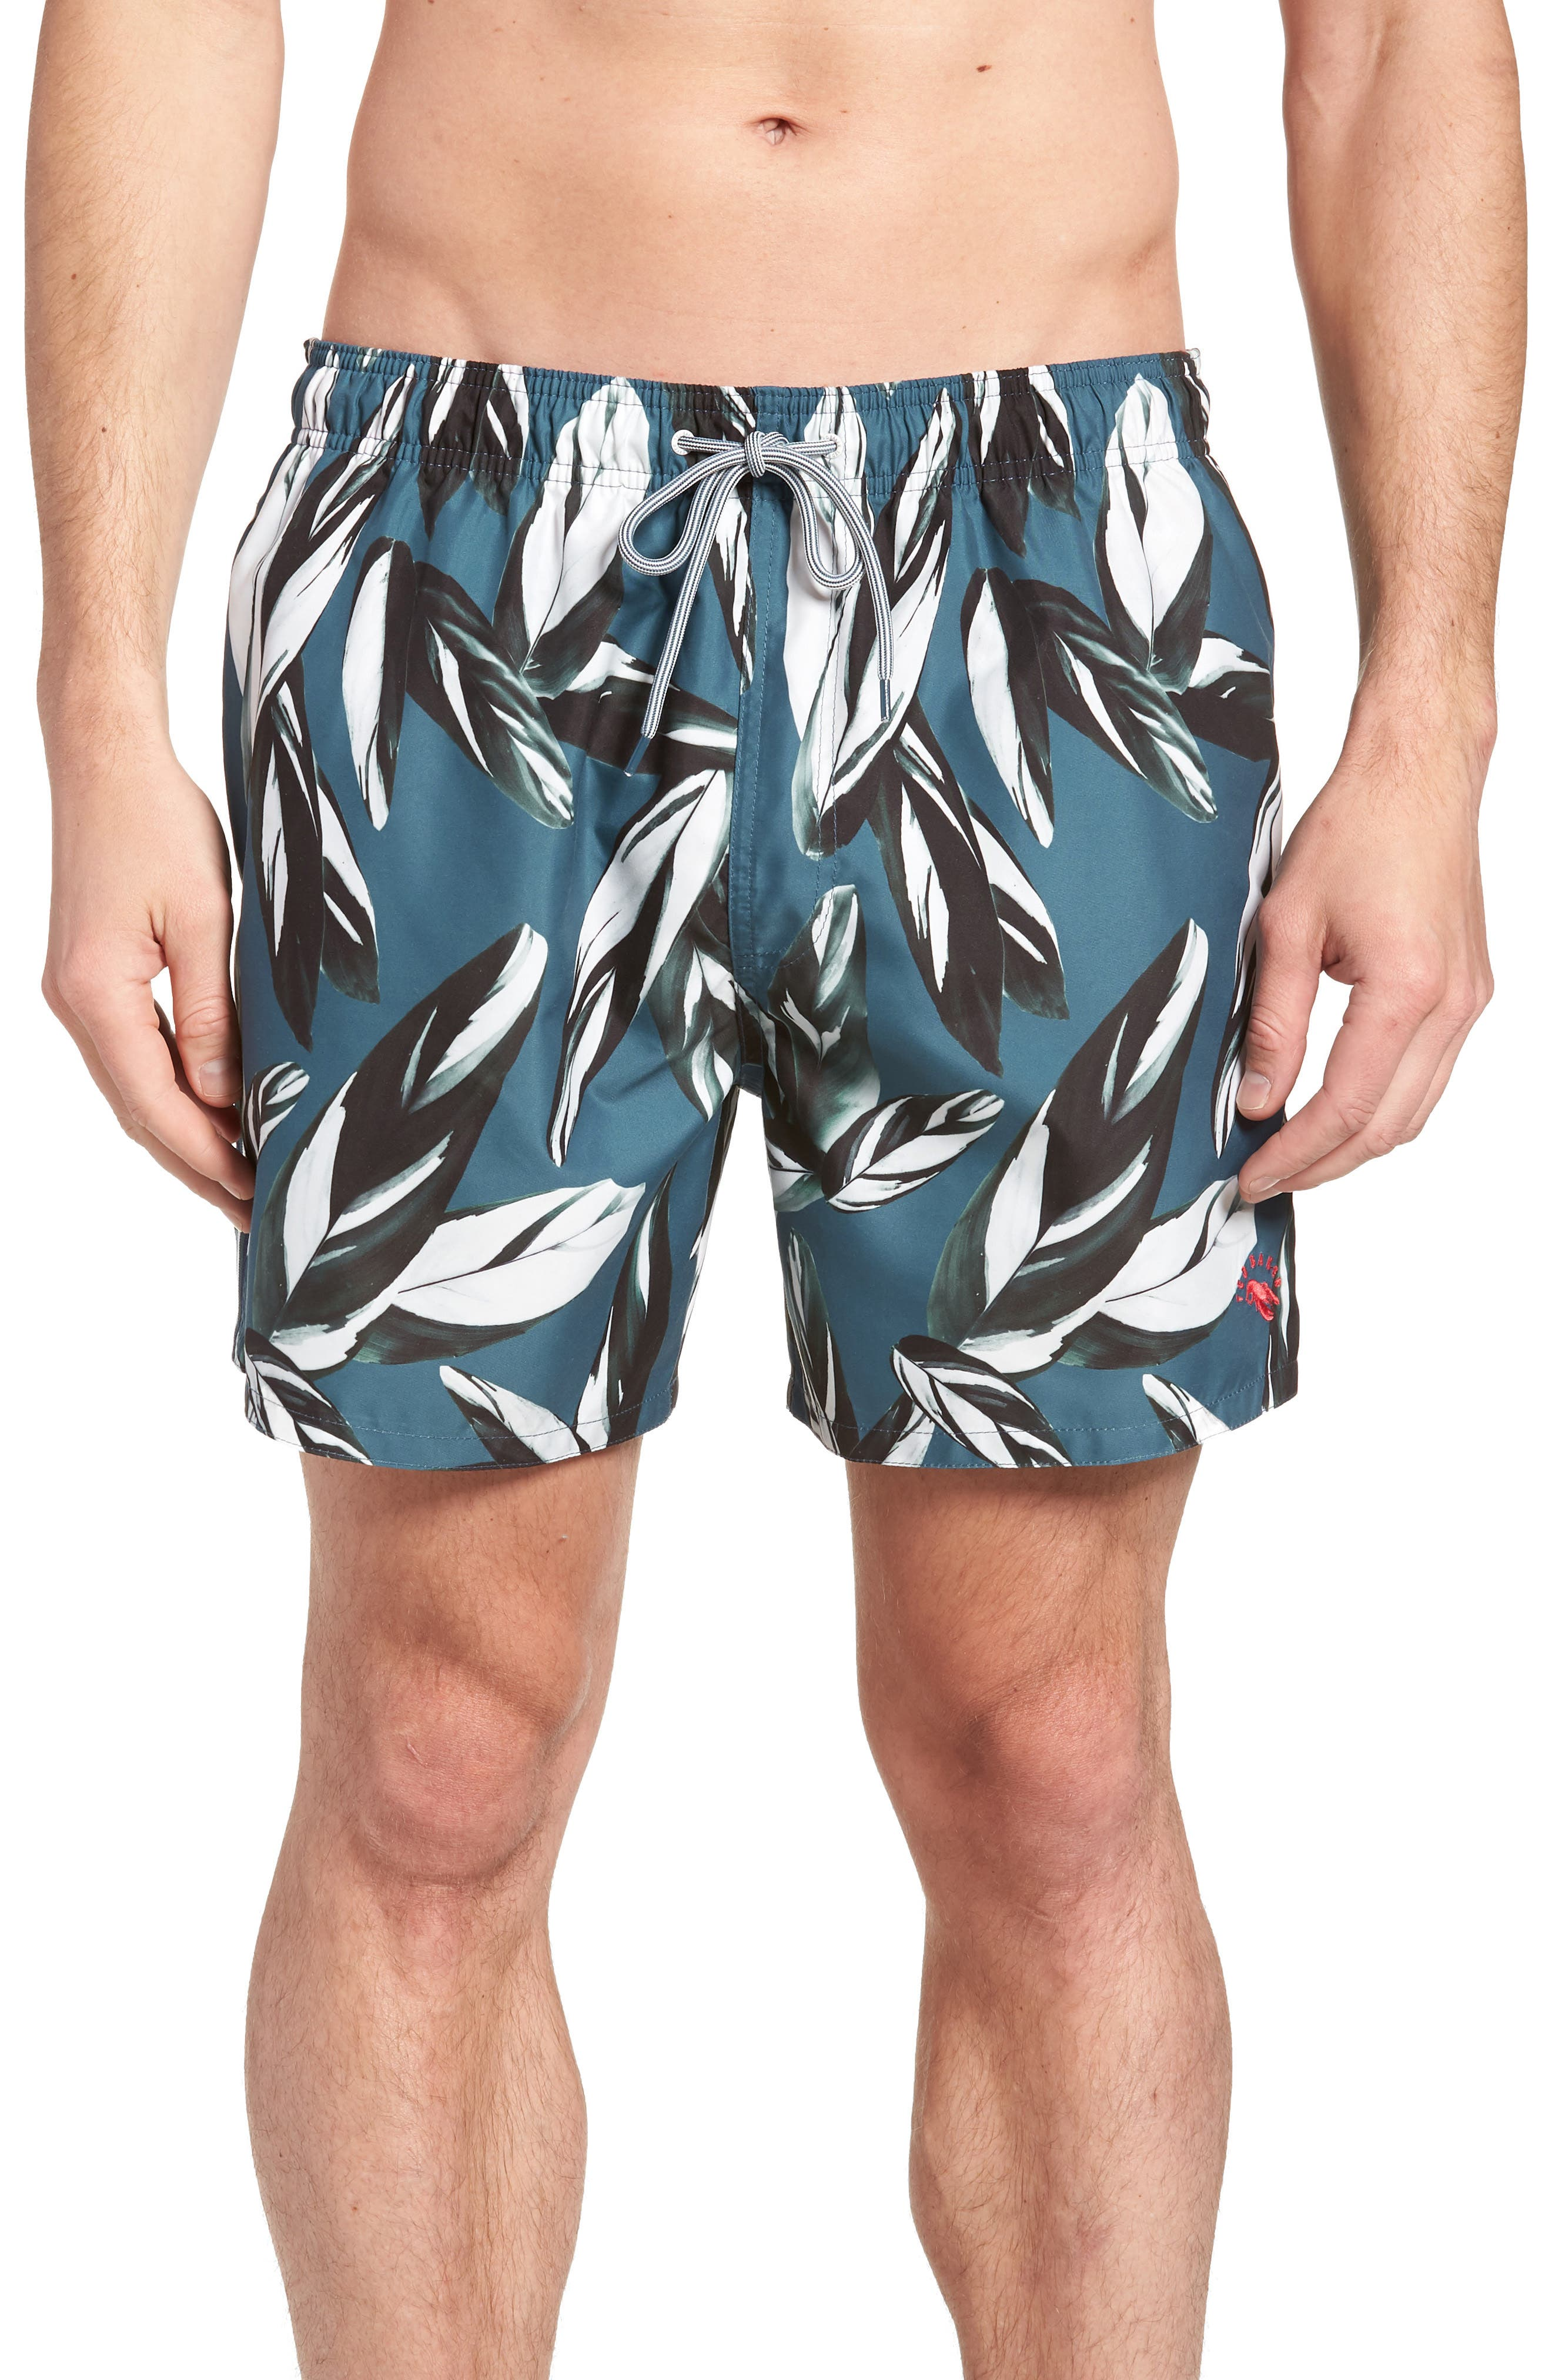 Bury Leaf Print Swim Shorts,                             Main thumbnail 1, color,                             440